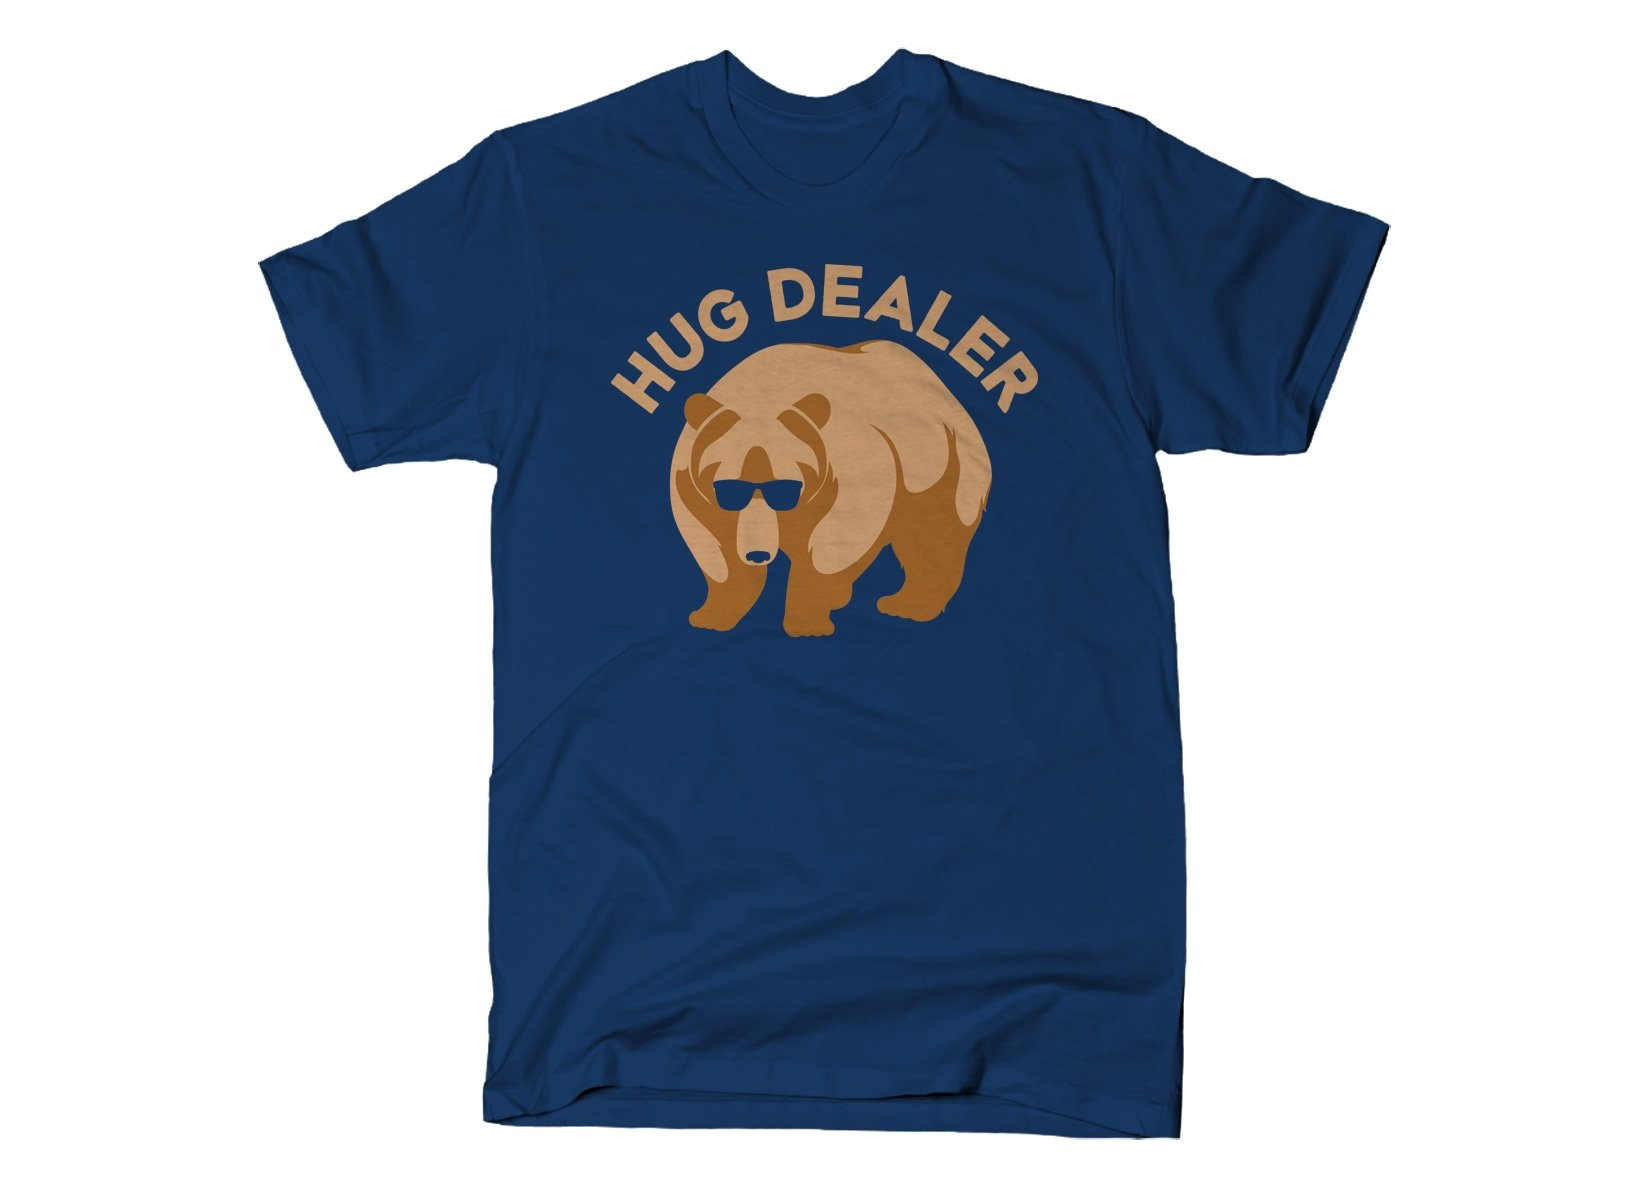 Hug Dealer on Mens T-Shirt